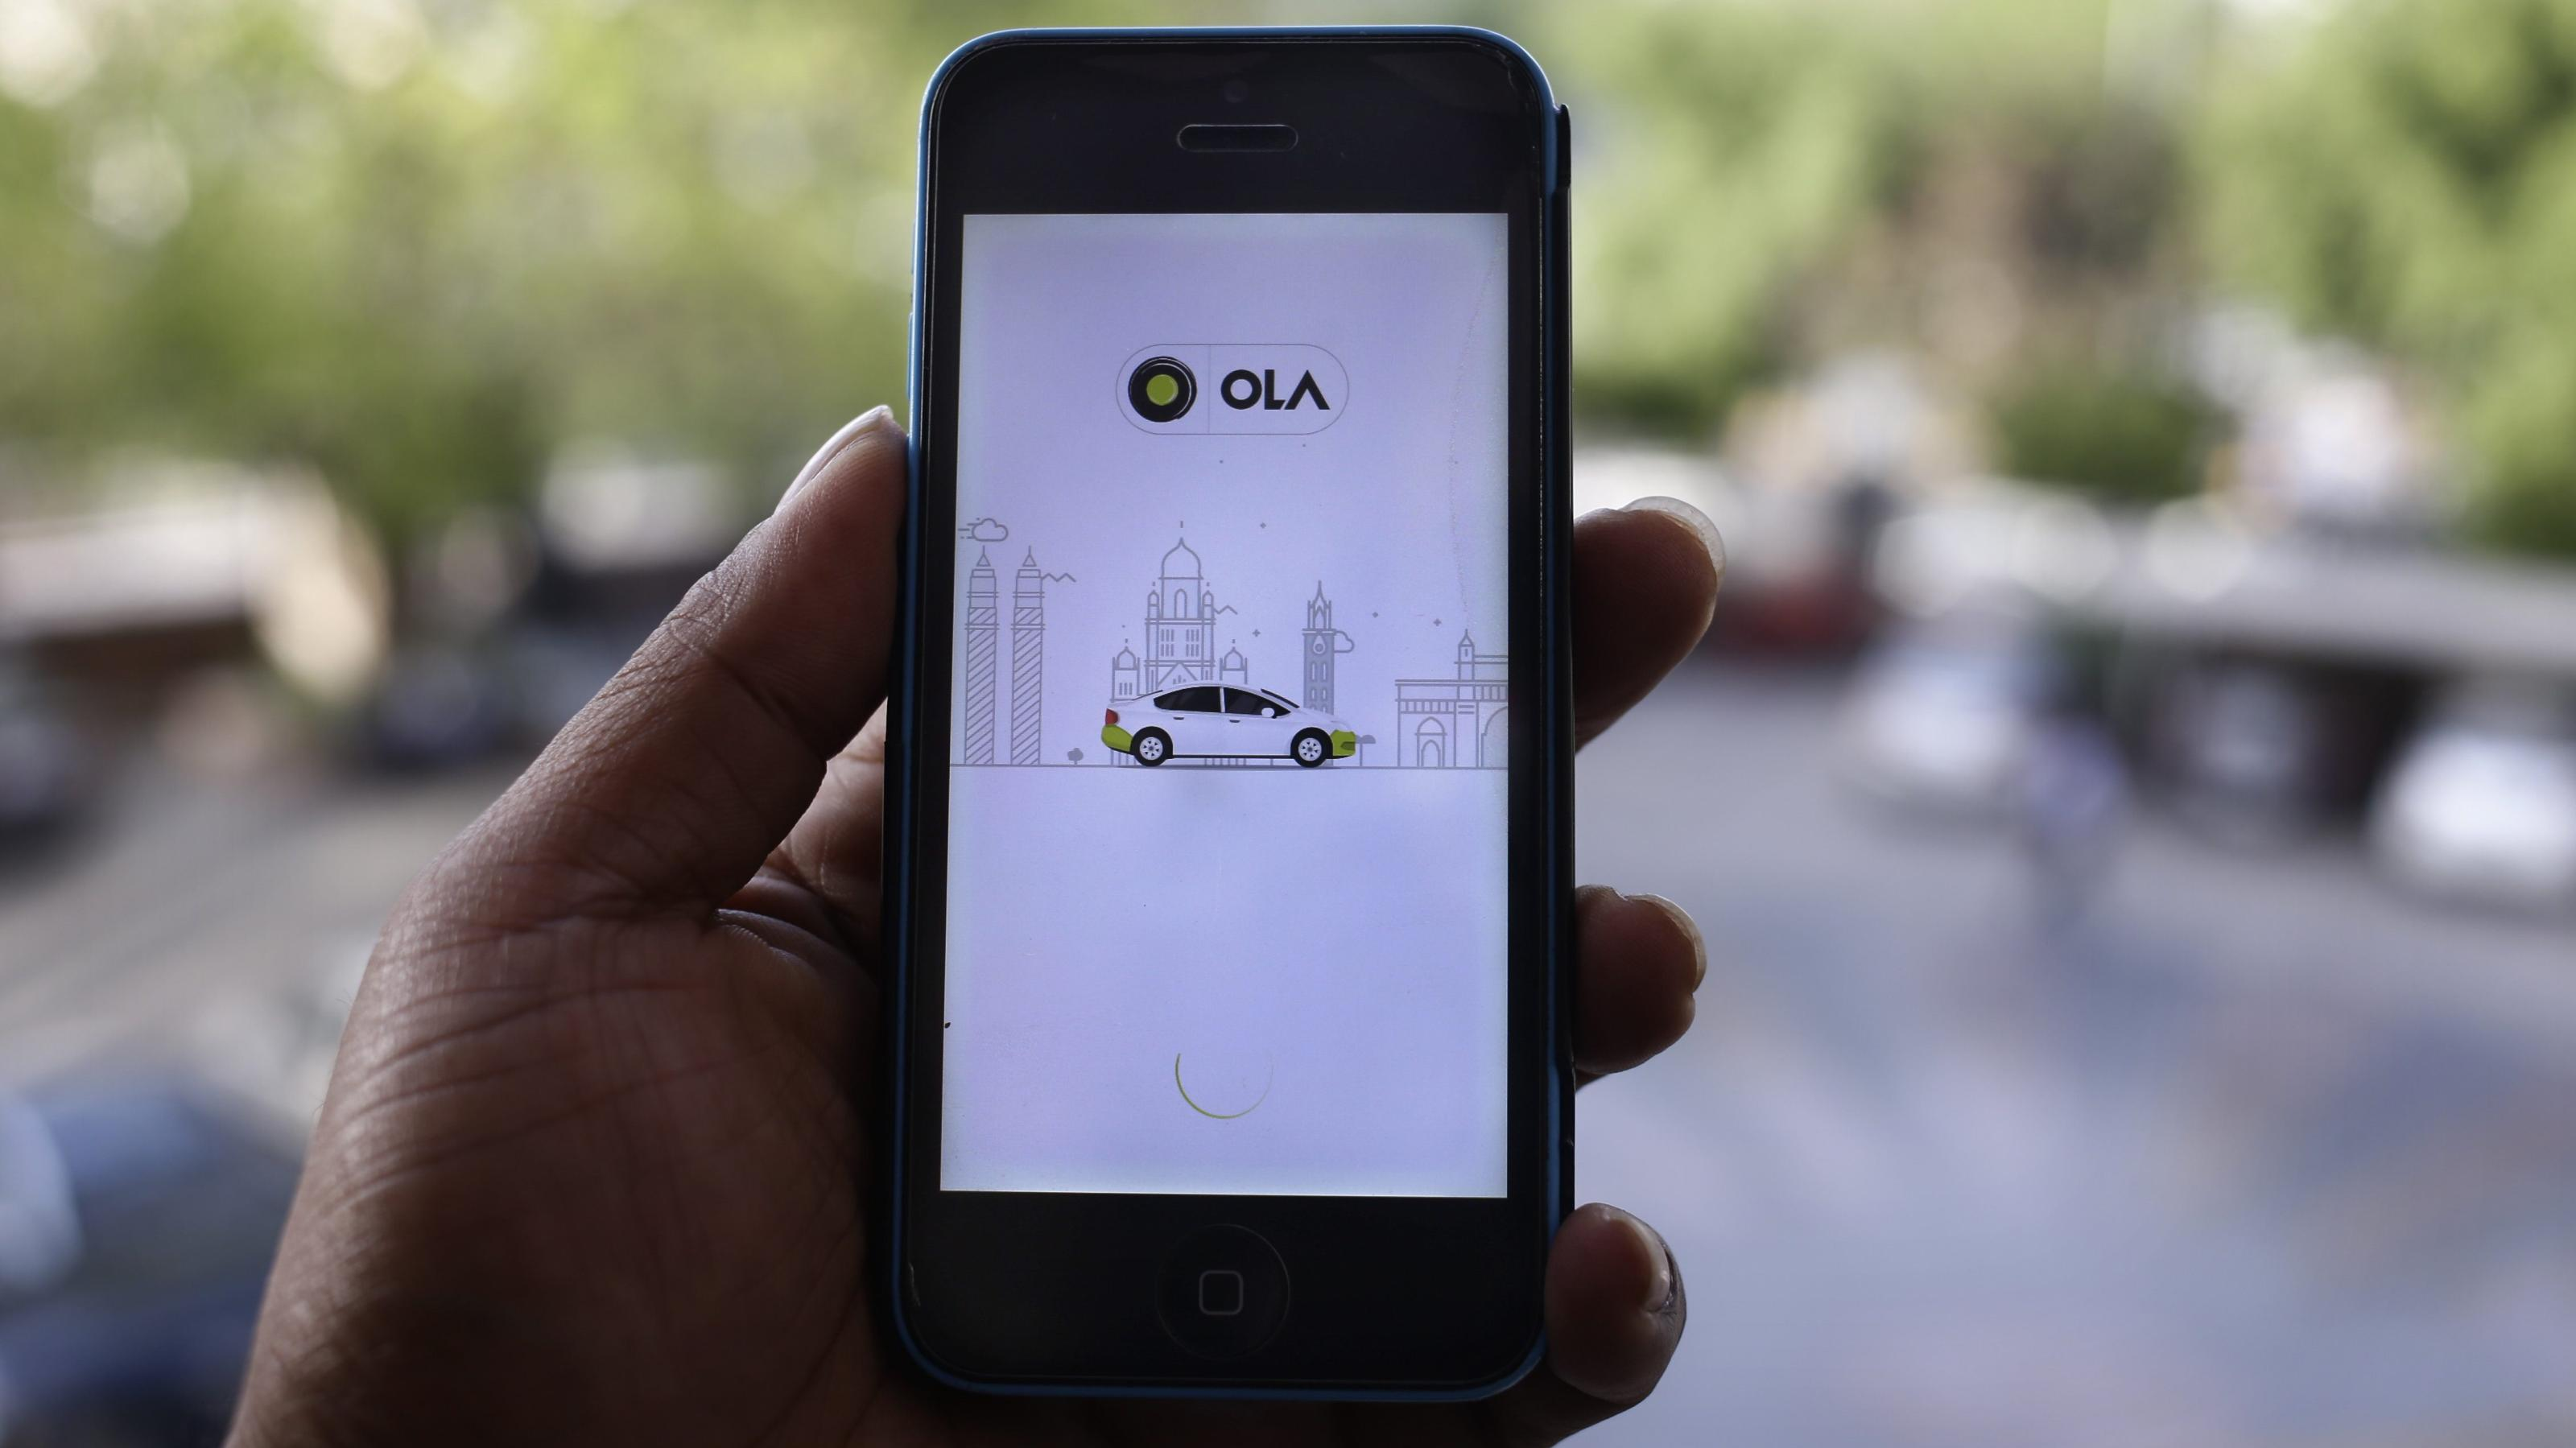 Ola has a lead over Uber in India's ride-hailing market